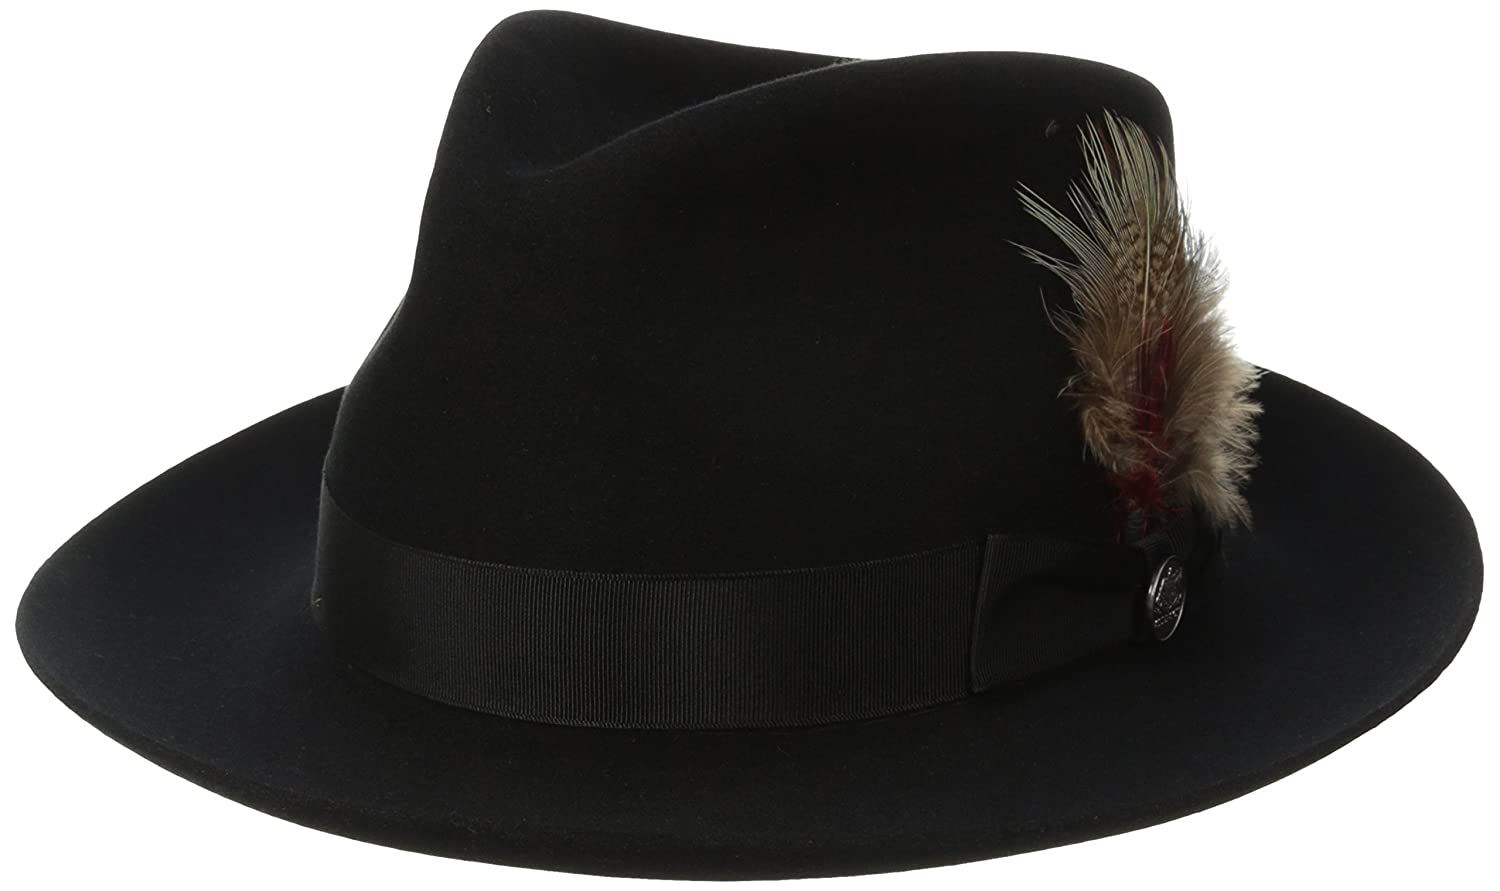 56cd3799 Stetson Men's Downs Royal Quality Fur Felt Hat at Amazon Men's Clothing  store: